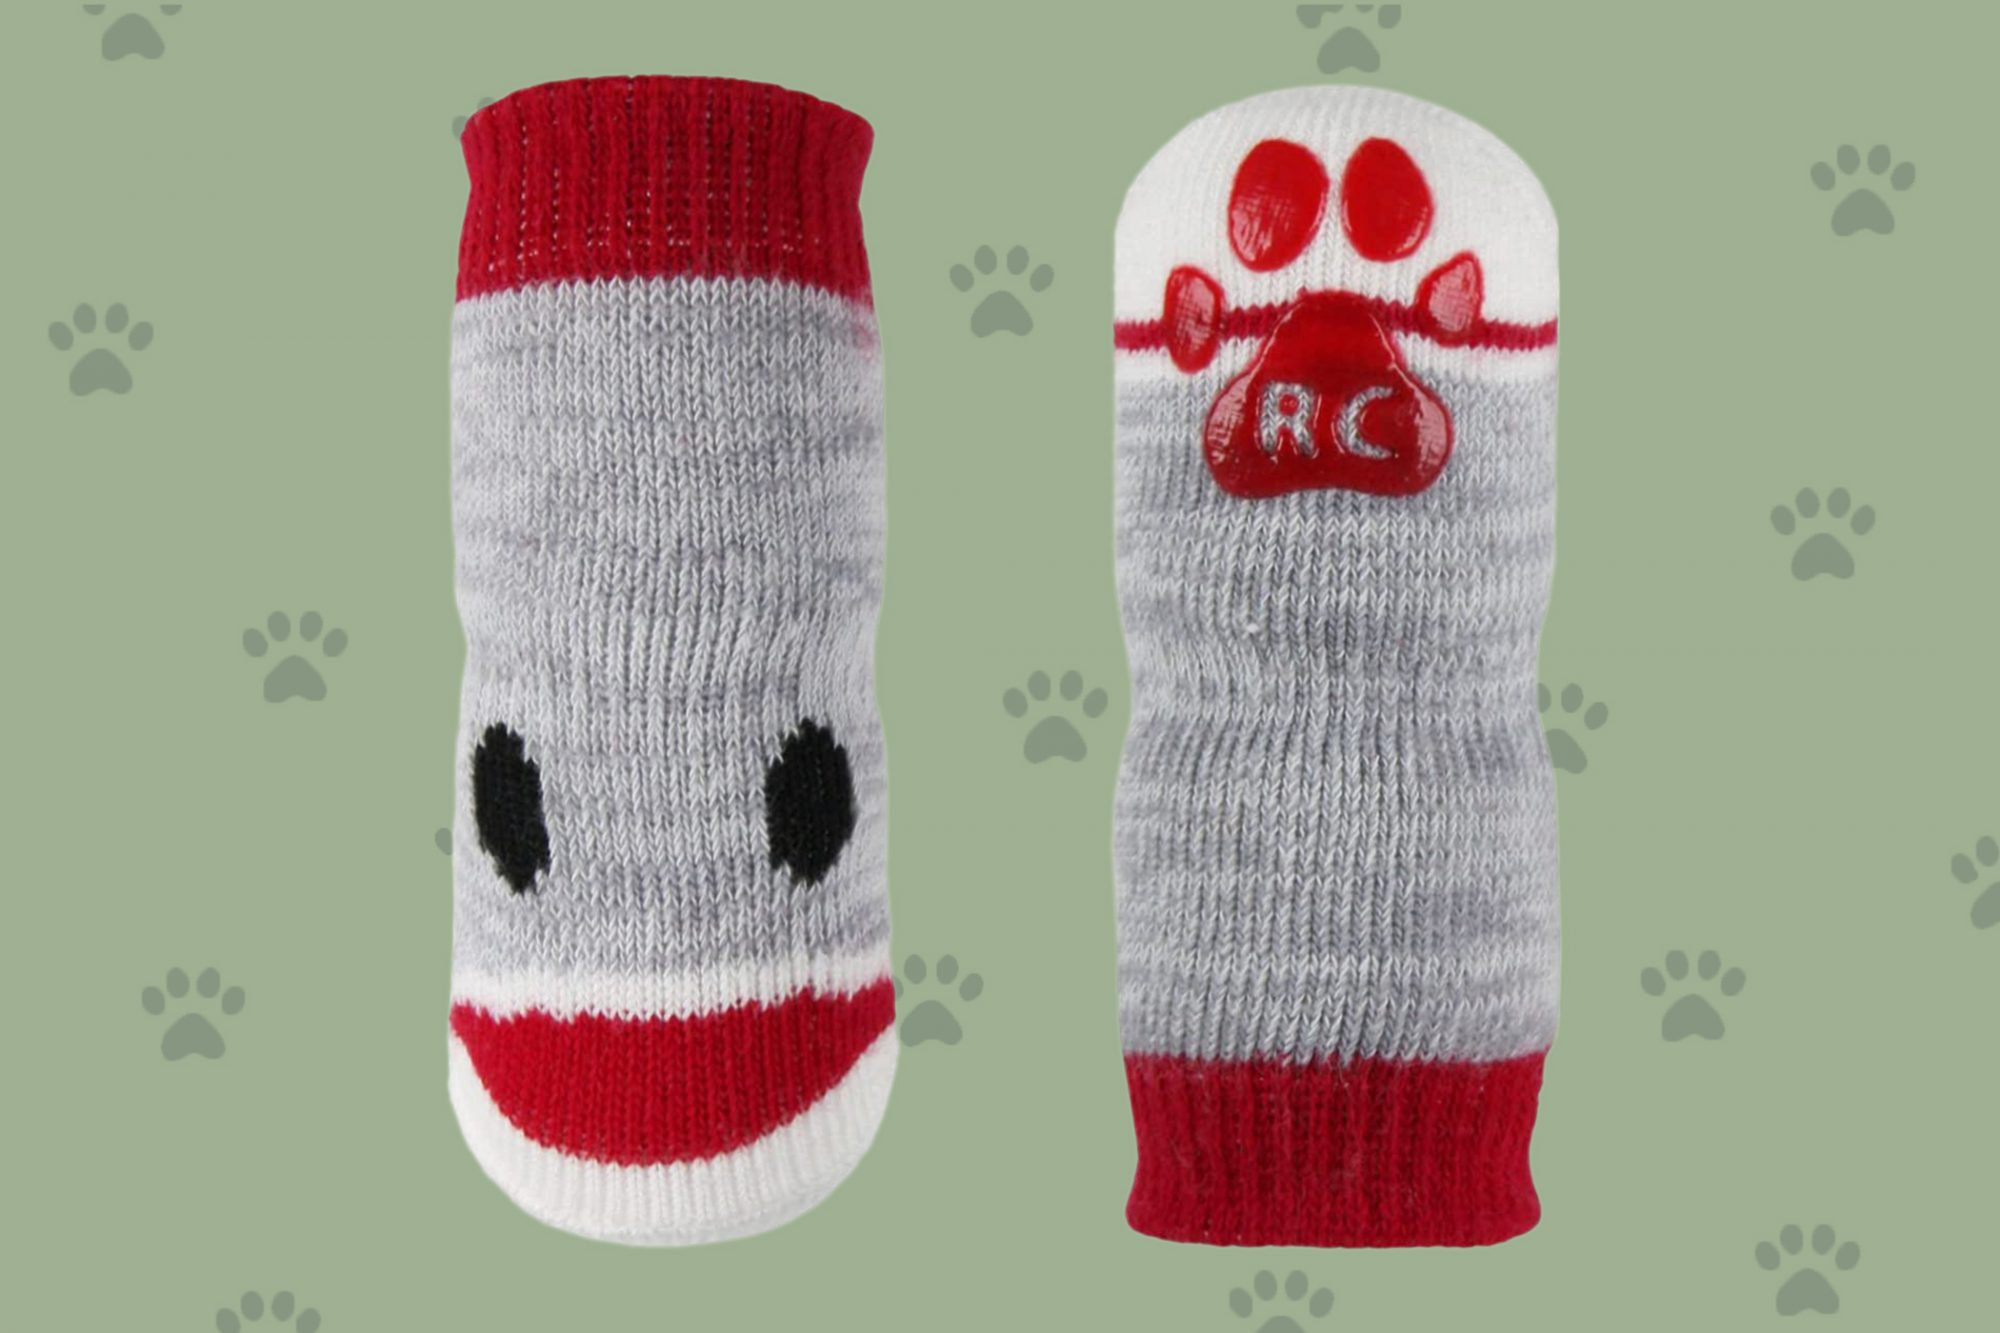 Product photo of doggy socks in the style of sock monkeys